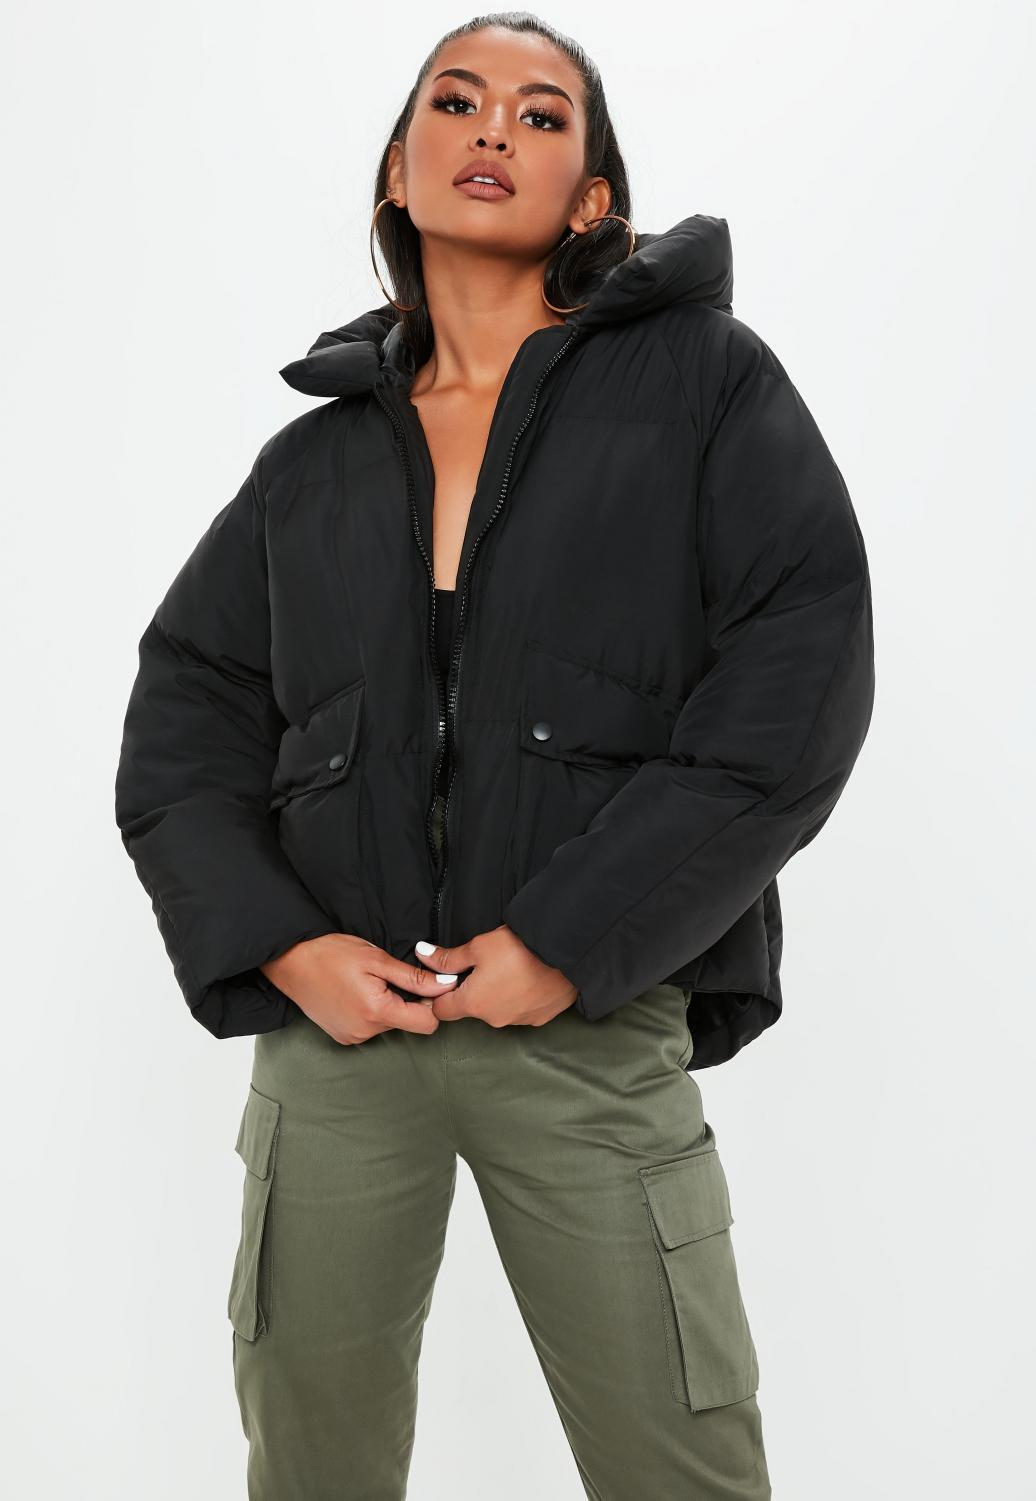 Oversized puffer jackets have been one of many trends this season.